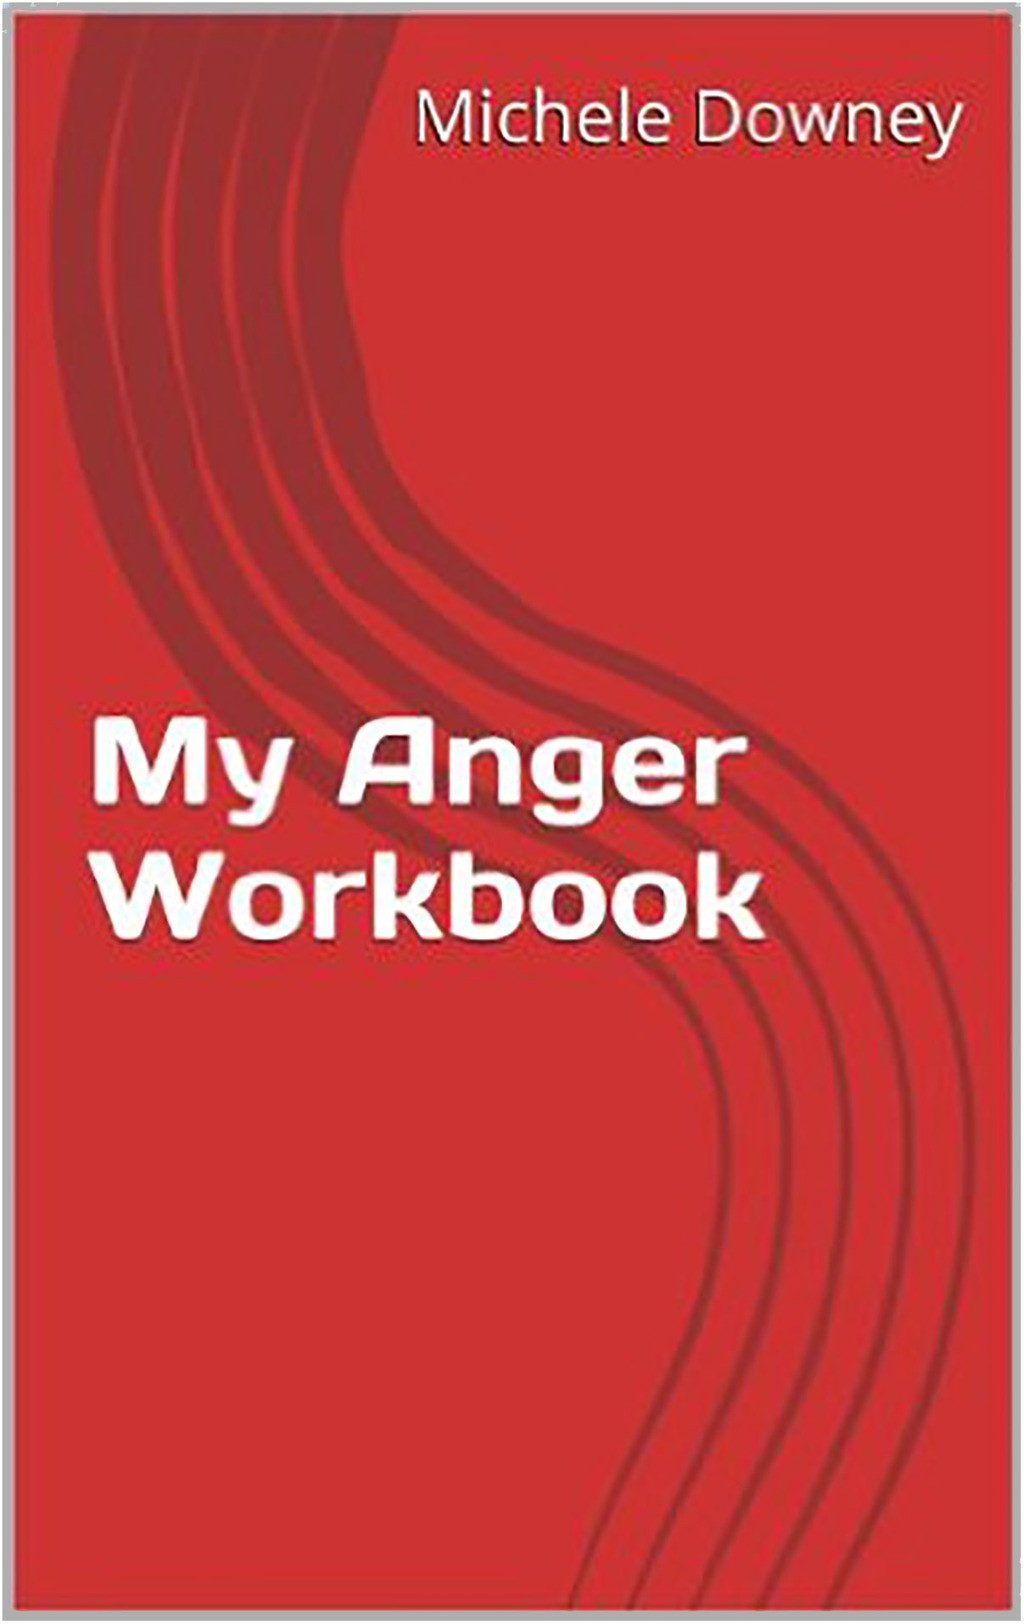 Workbooks anger workbook : My Anger Workbook - Michele Downey